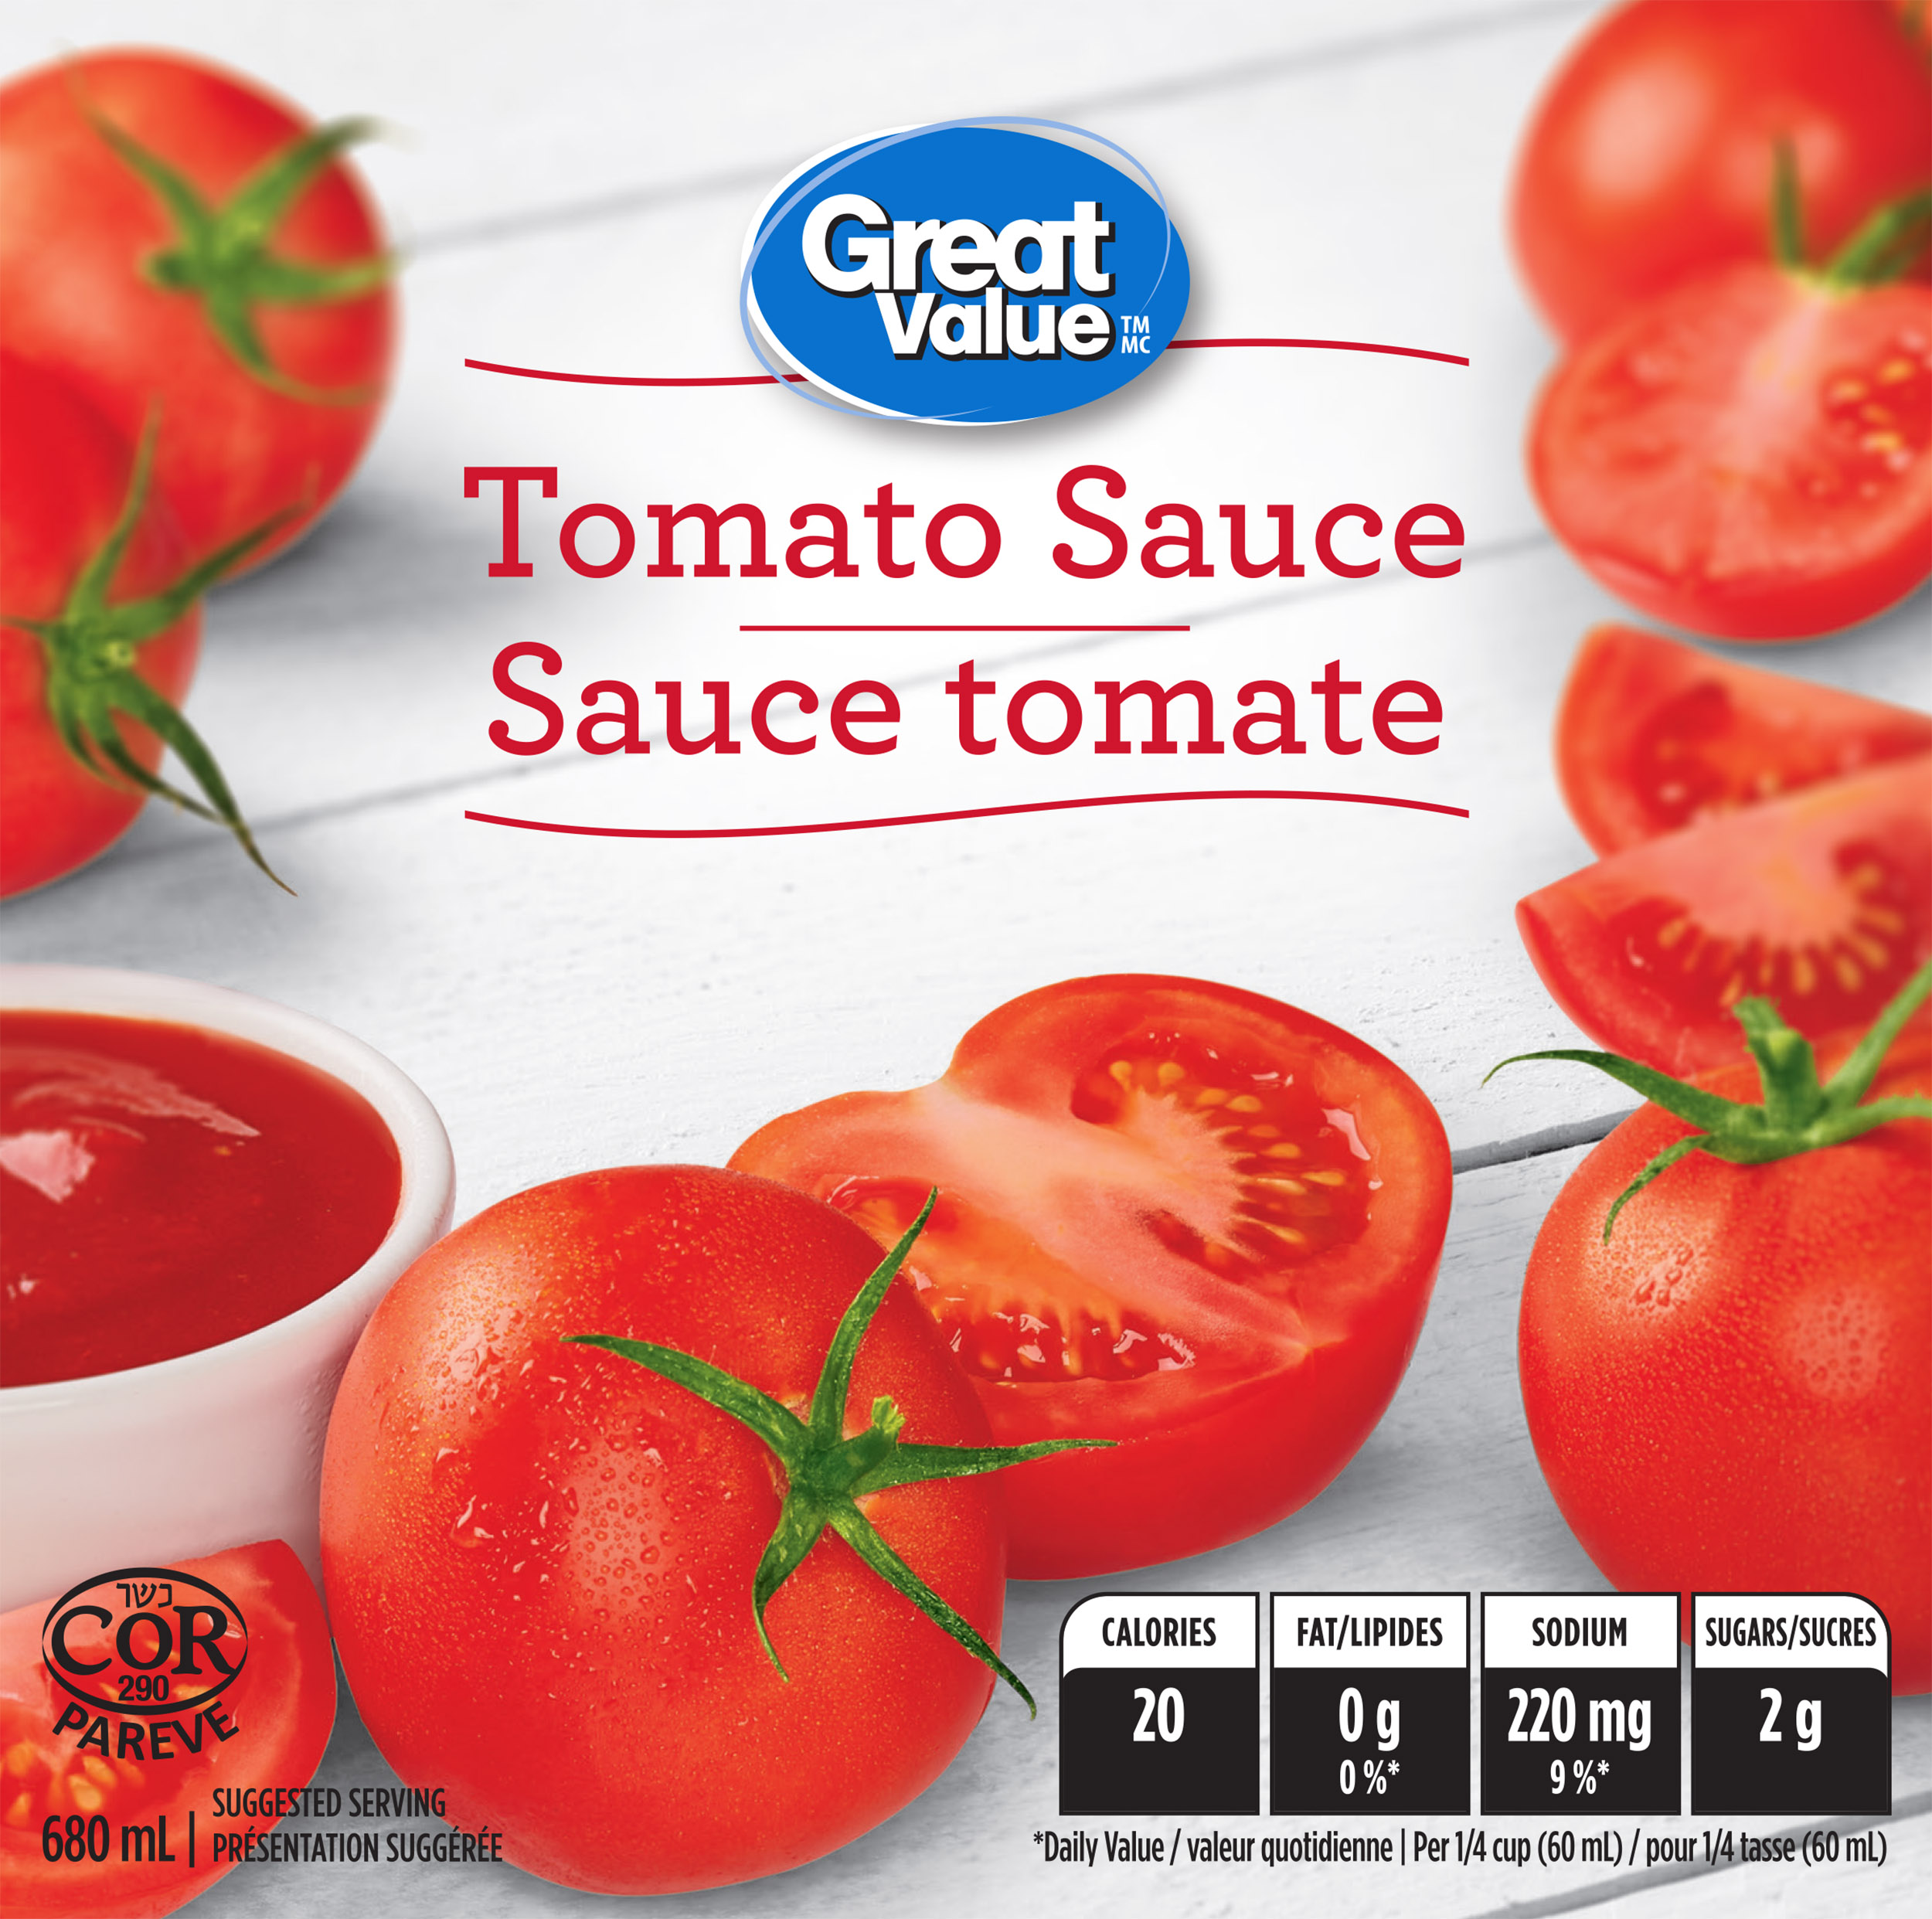 TomatoSauce680mL_caWEI_lbl_Final_LR-2